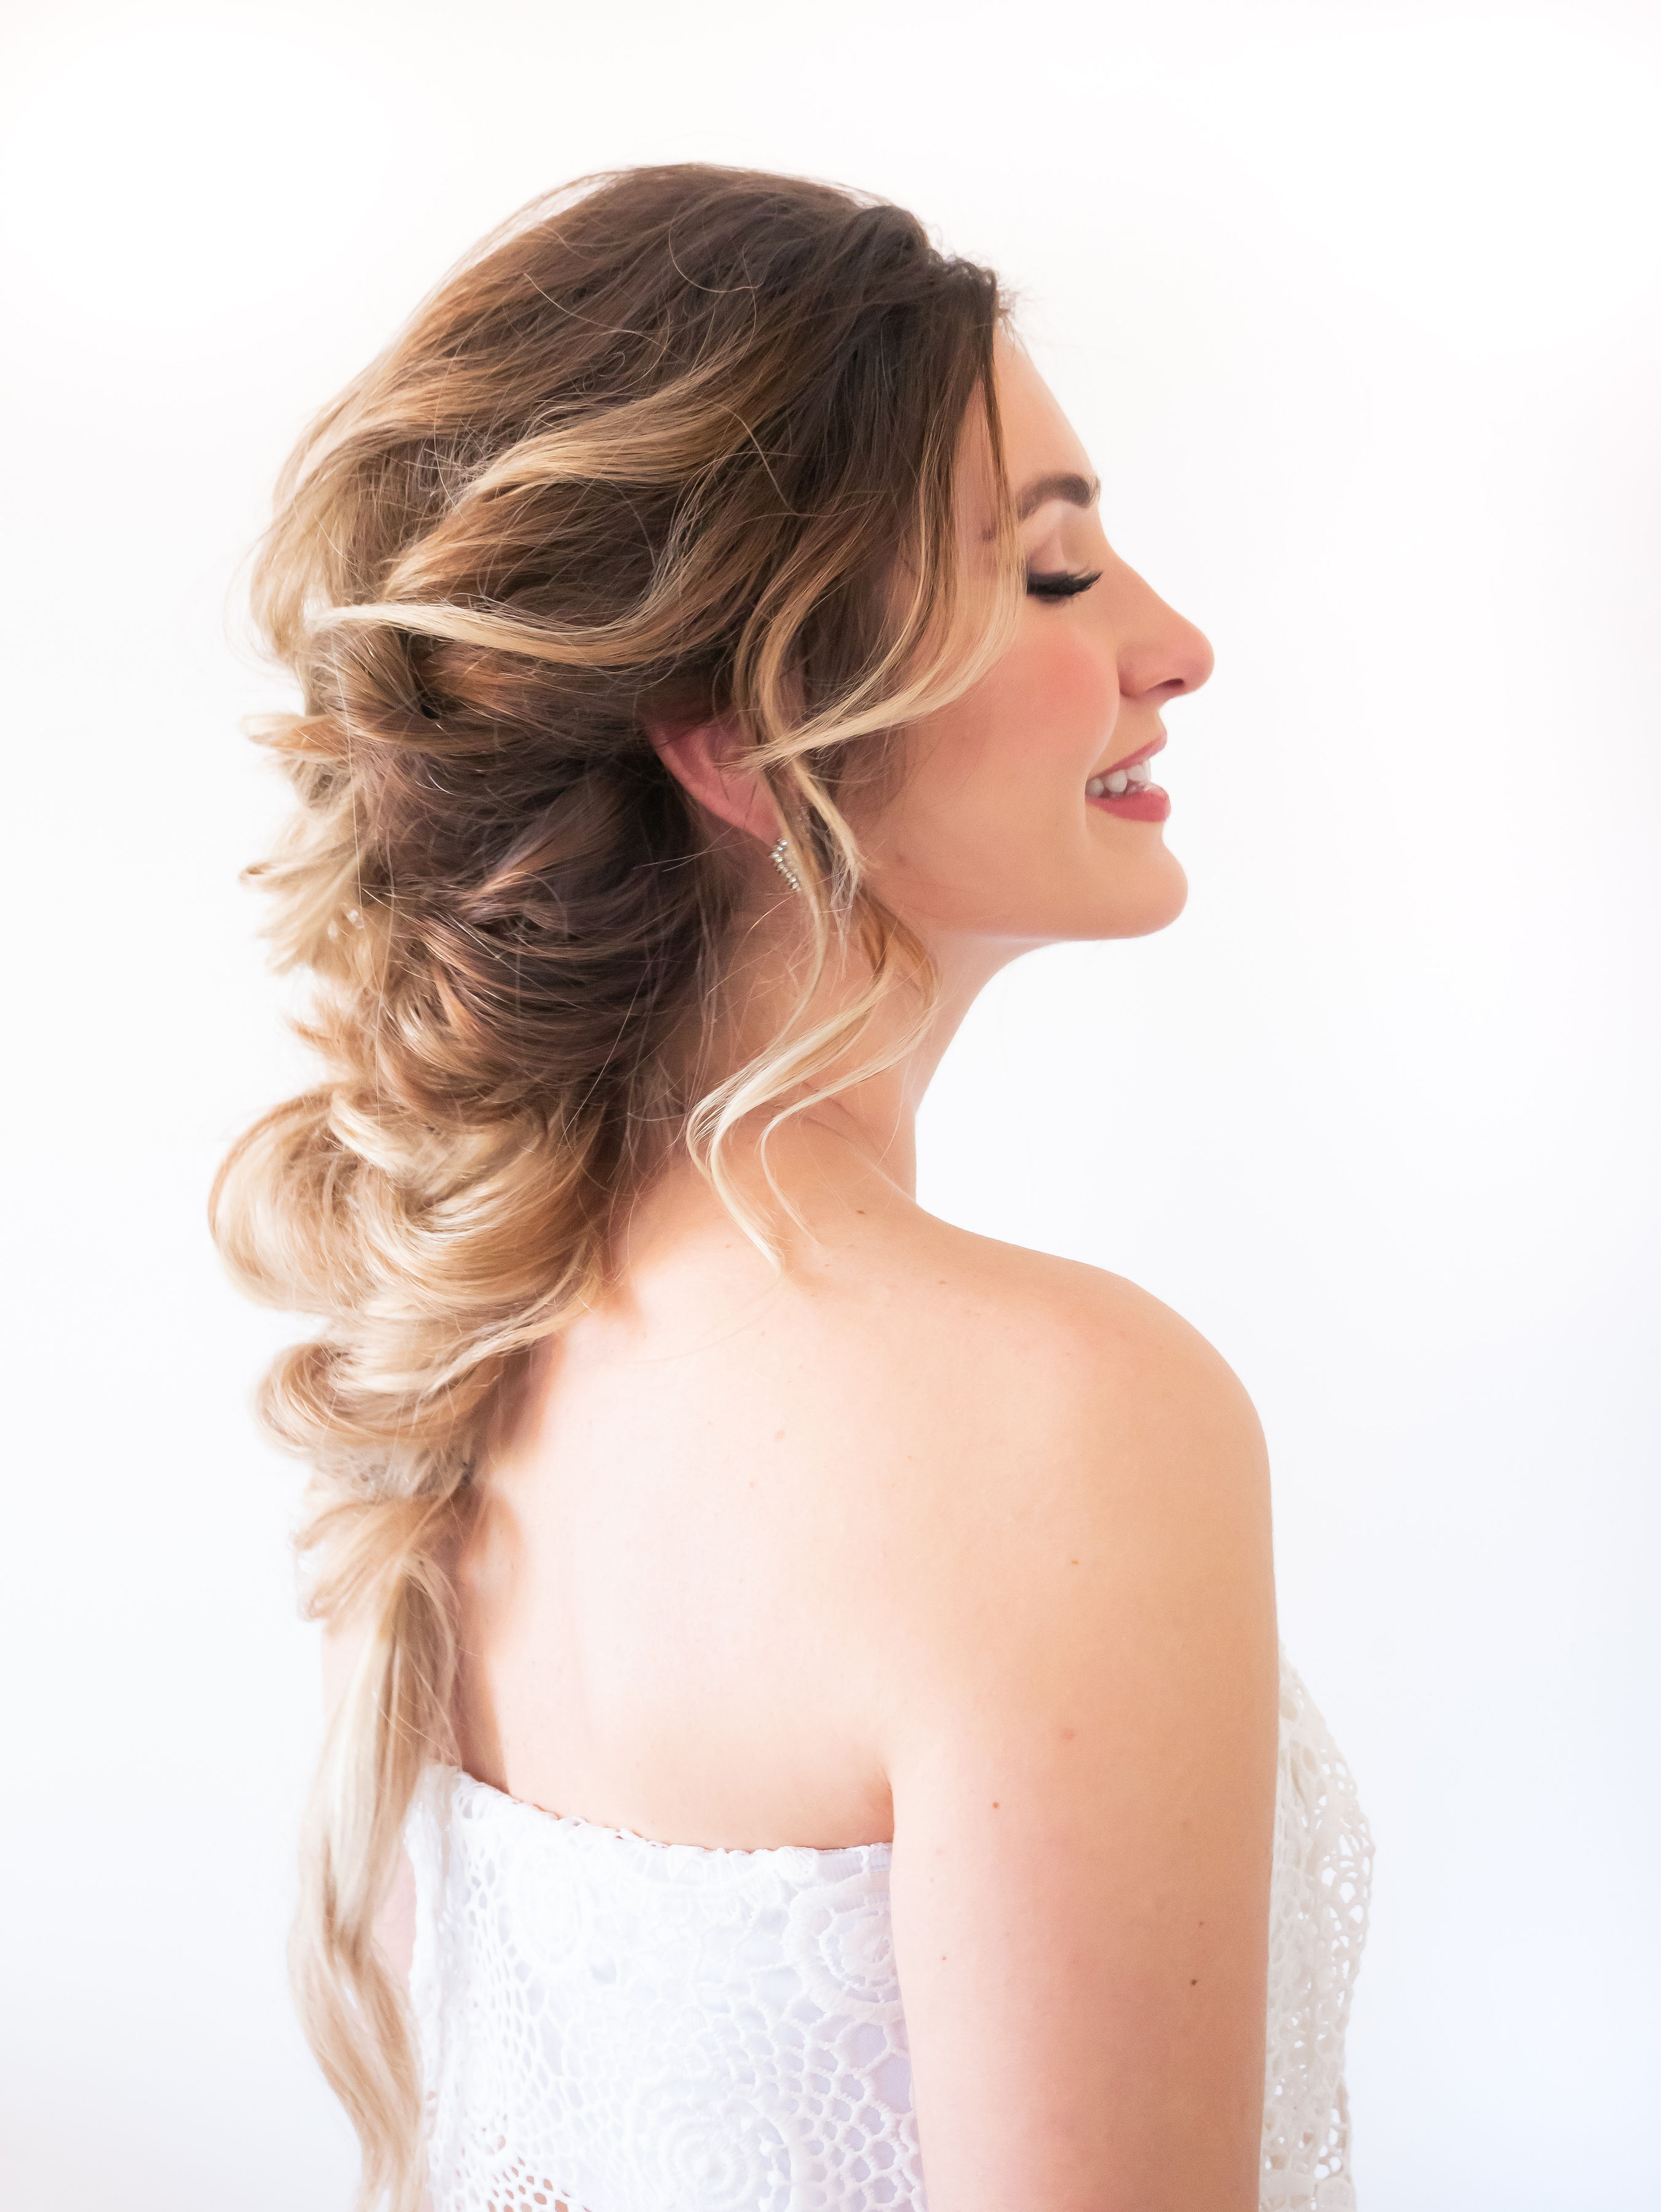 Bridal Hair and Makeup. Allure Makeup